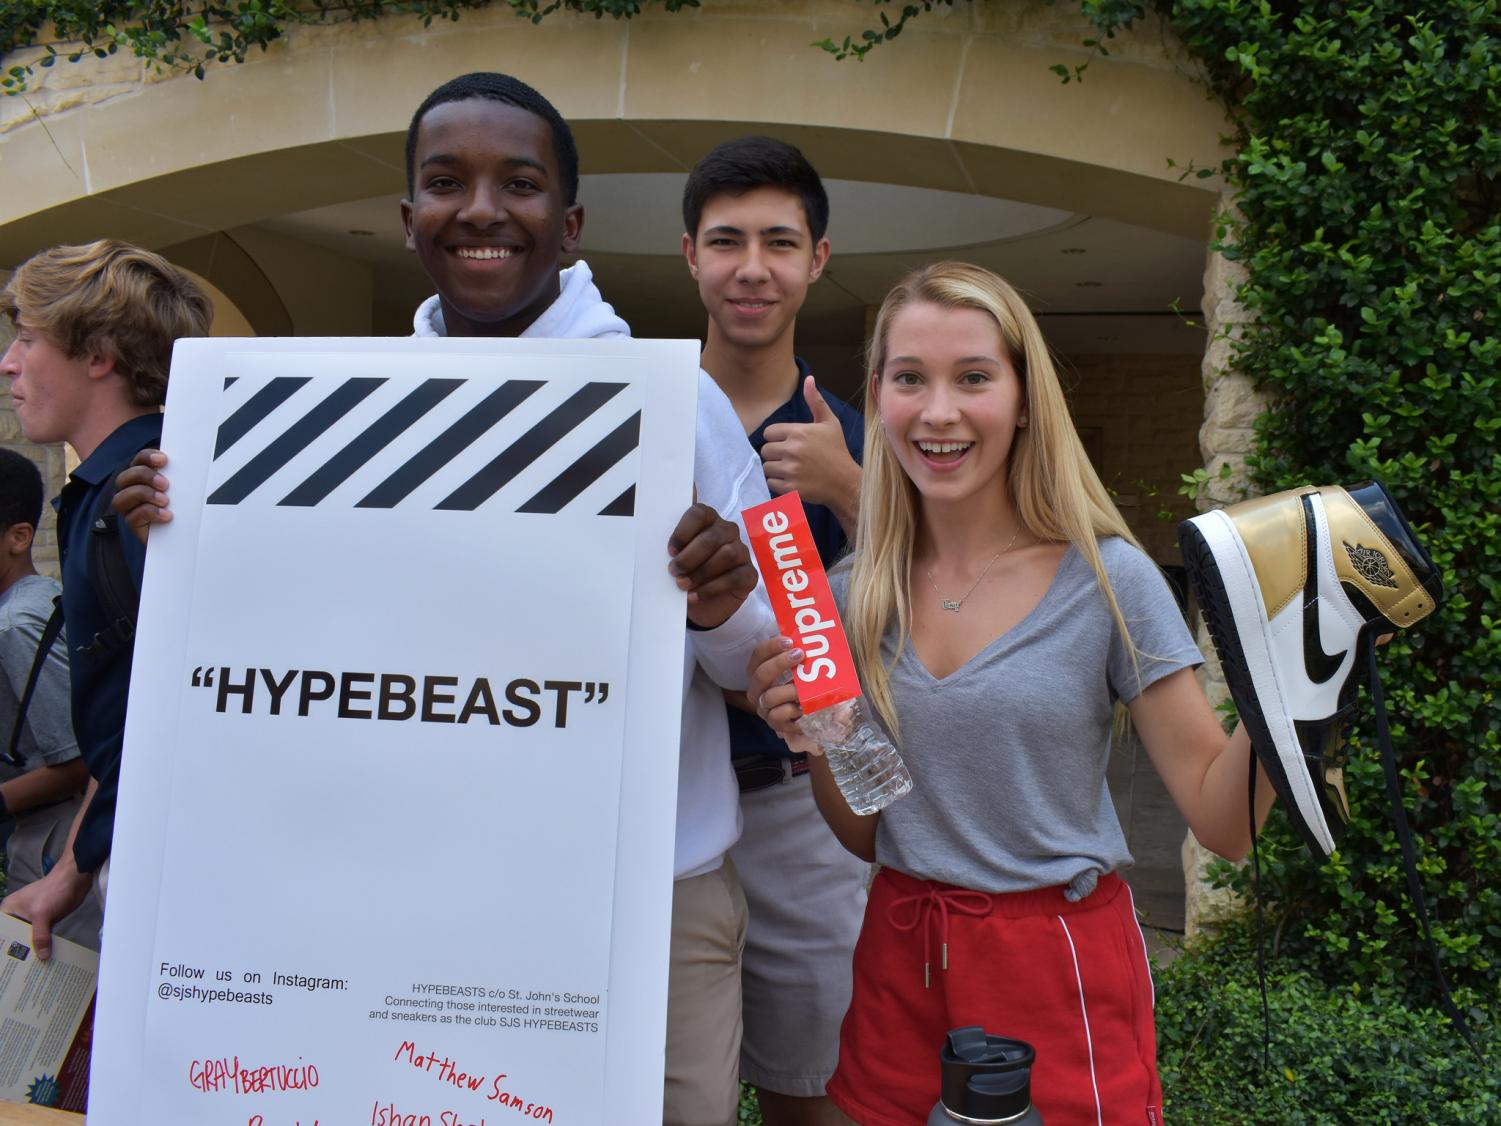 Hypebeast+Club+attracts+new+members+and+sneakerheads+with+their+Club+Fair+setup.